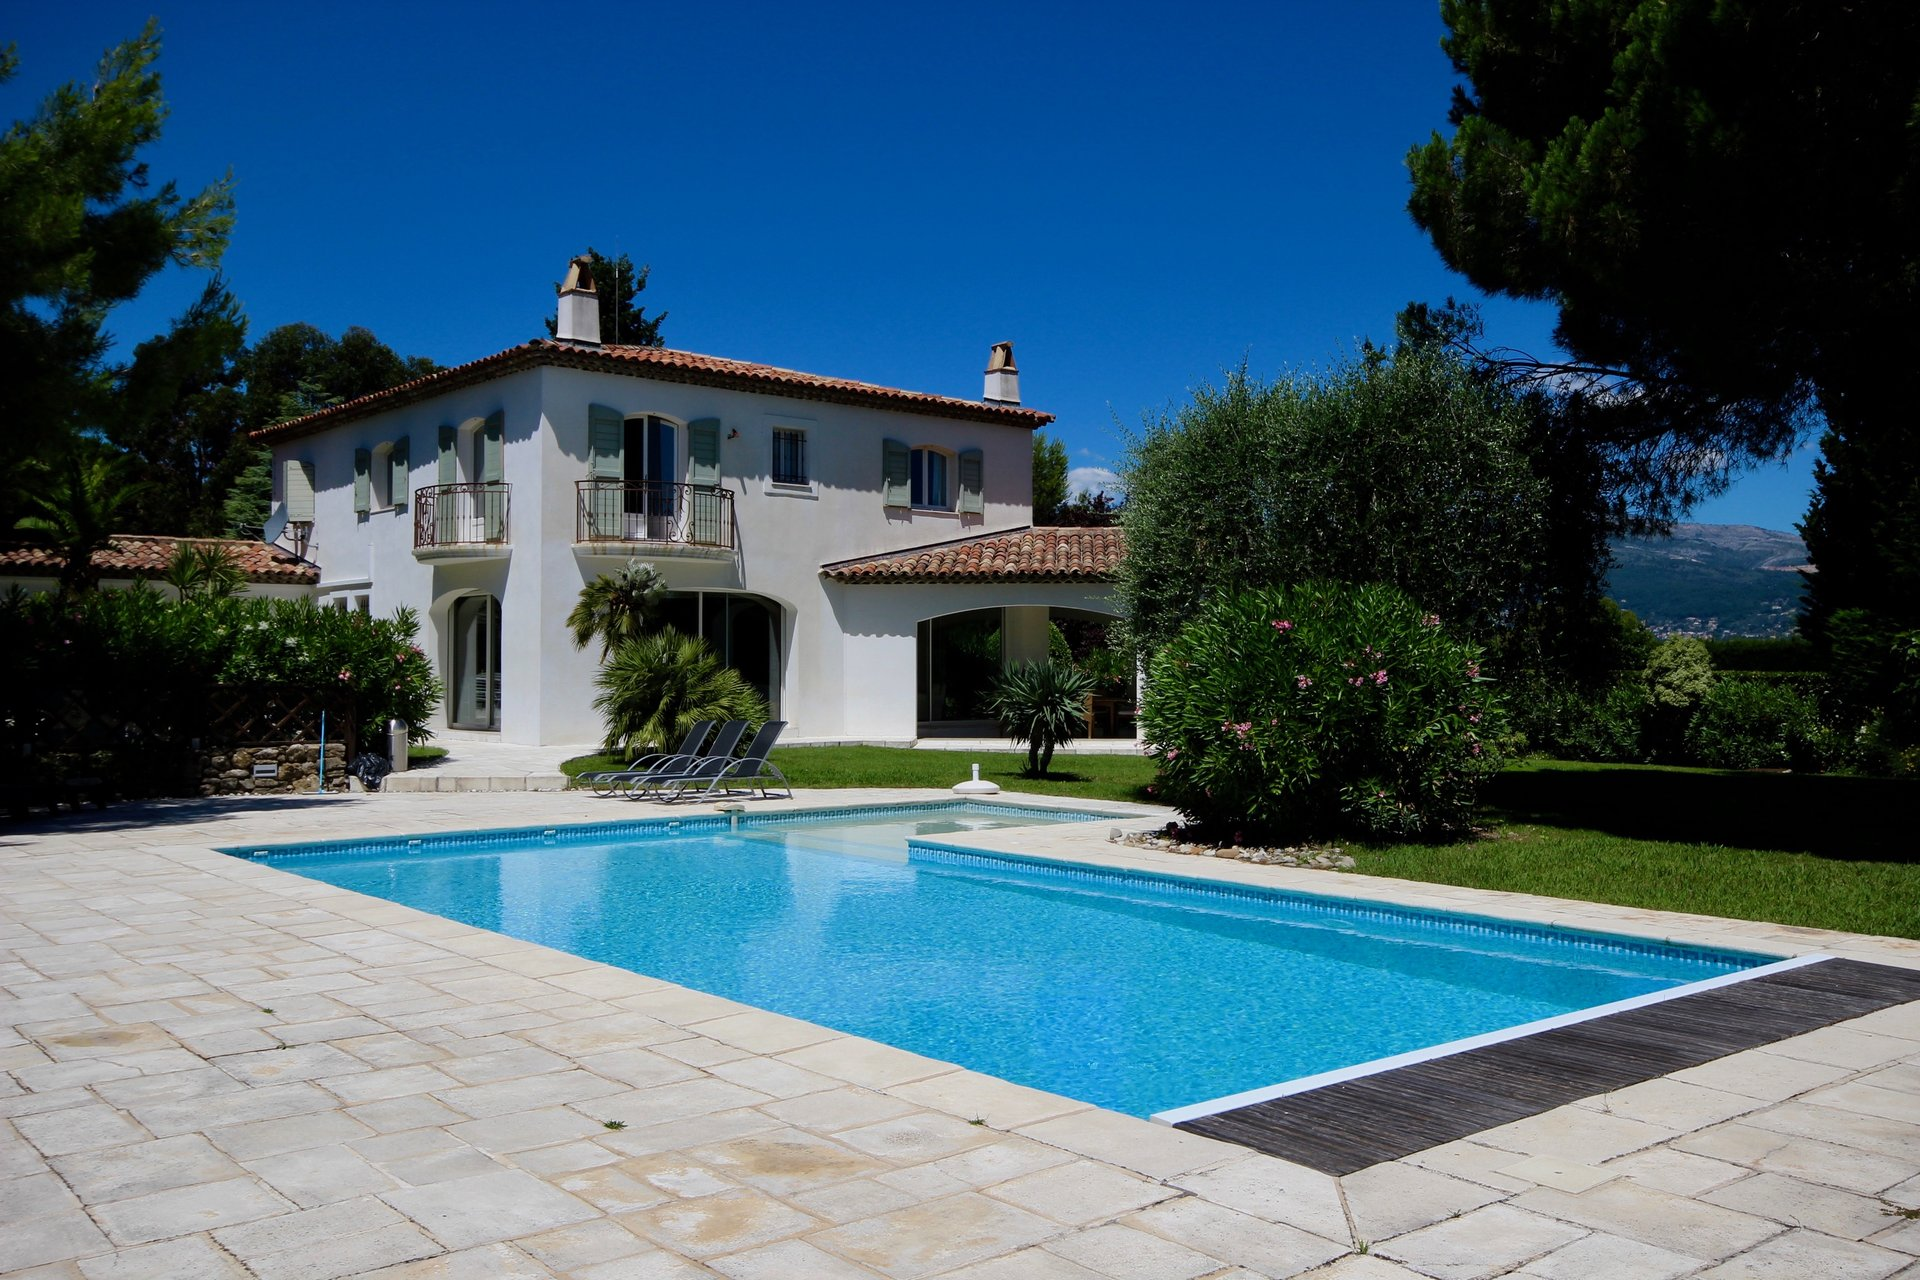 Beautiful property in the Castellaras area